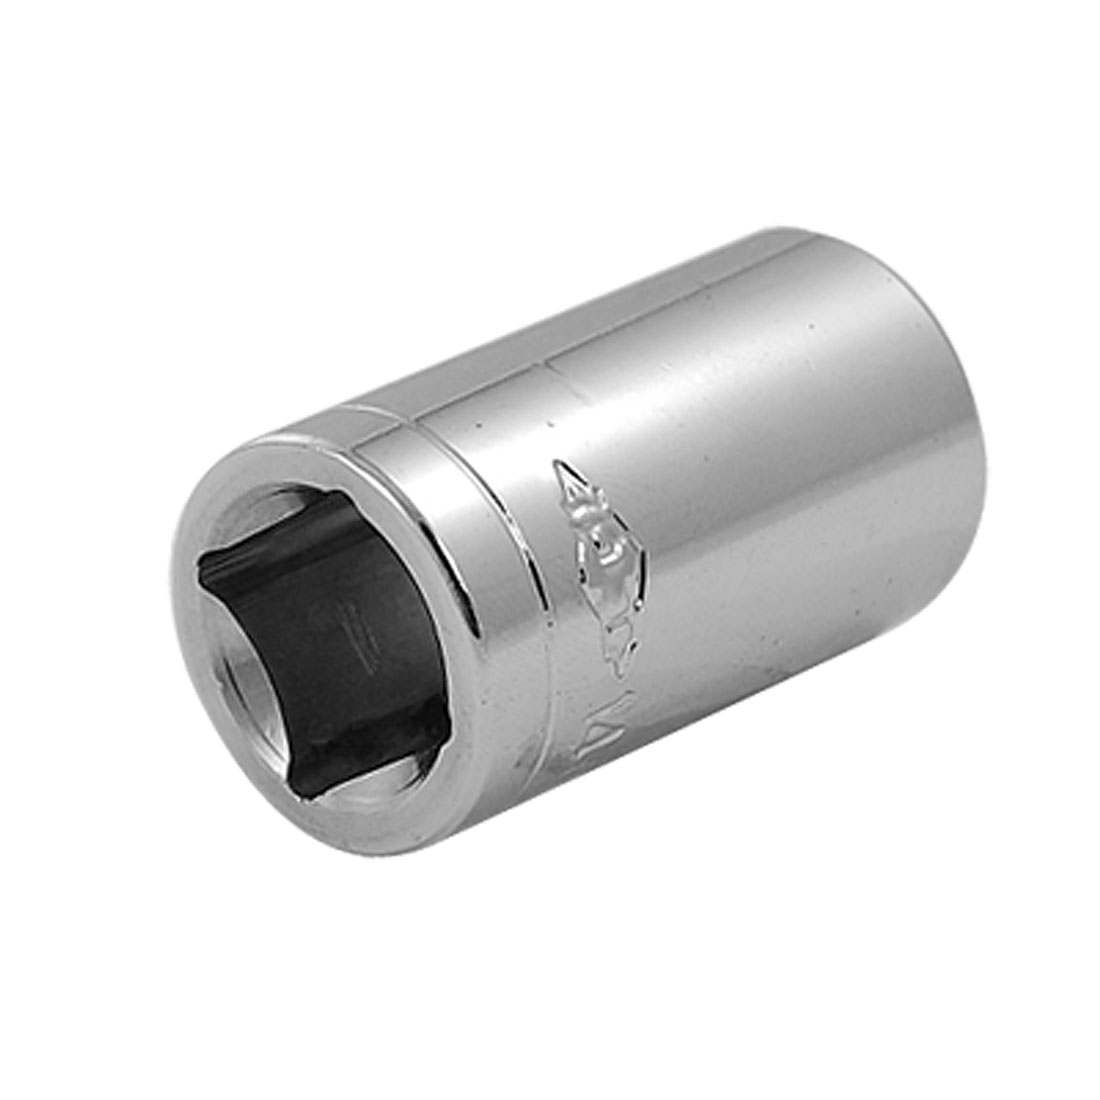 "1/2"" Square Driver 14mm Metric 6 Point Axle Nut Socket"